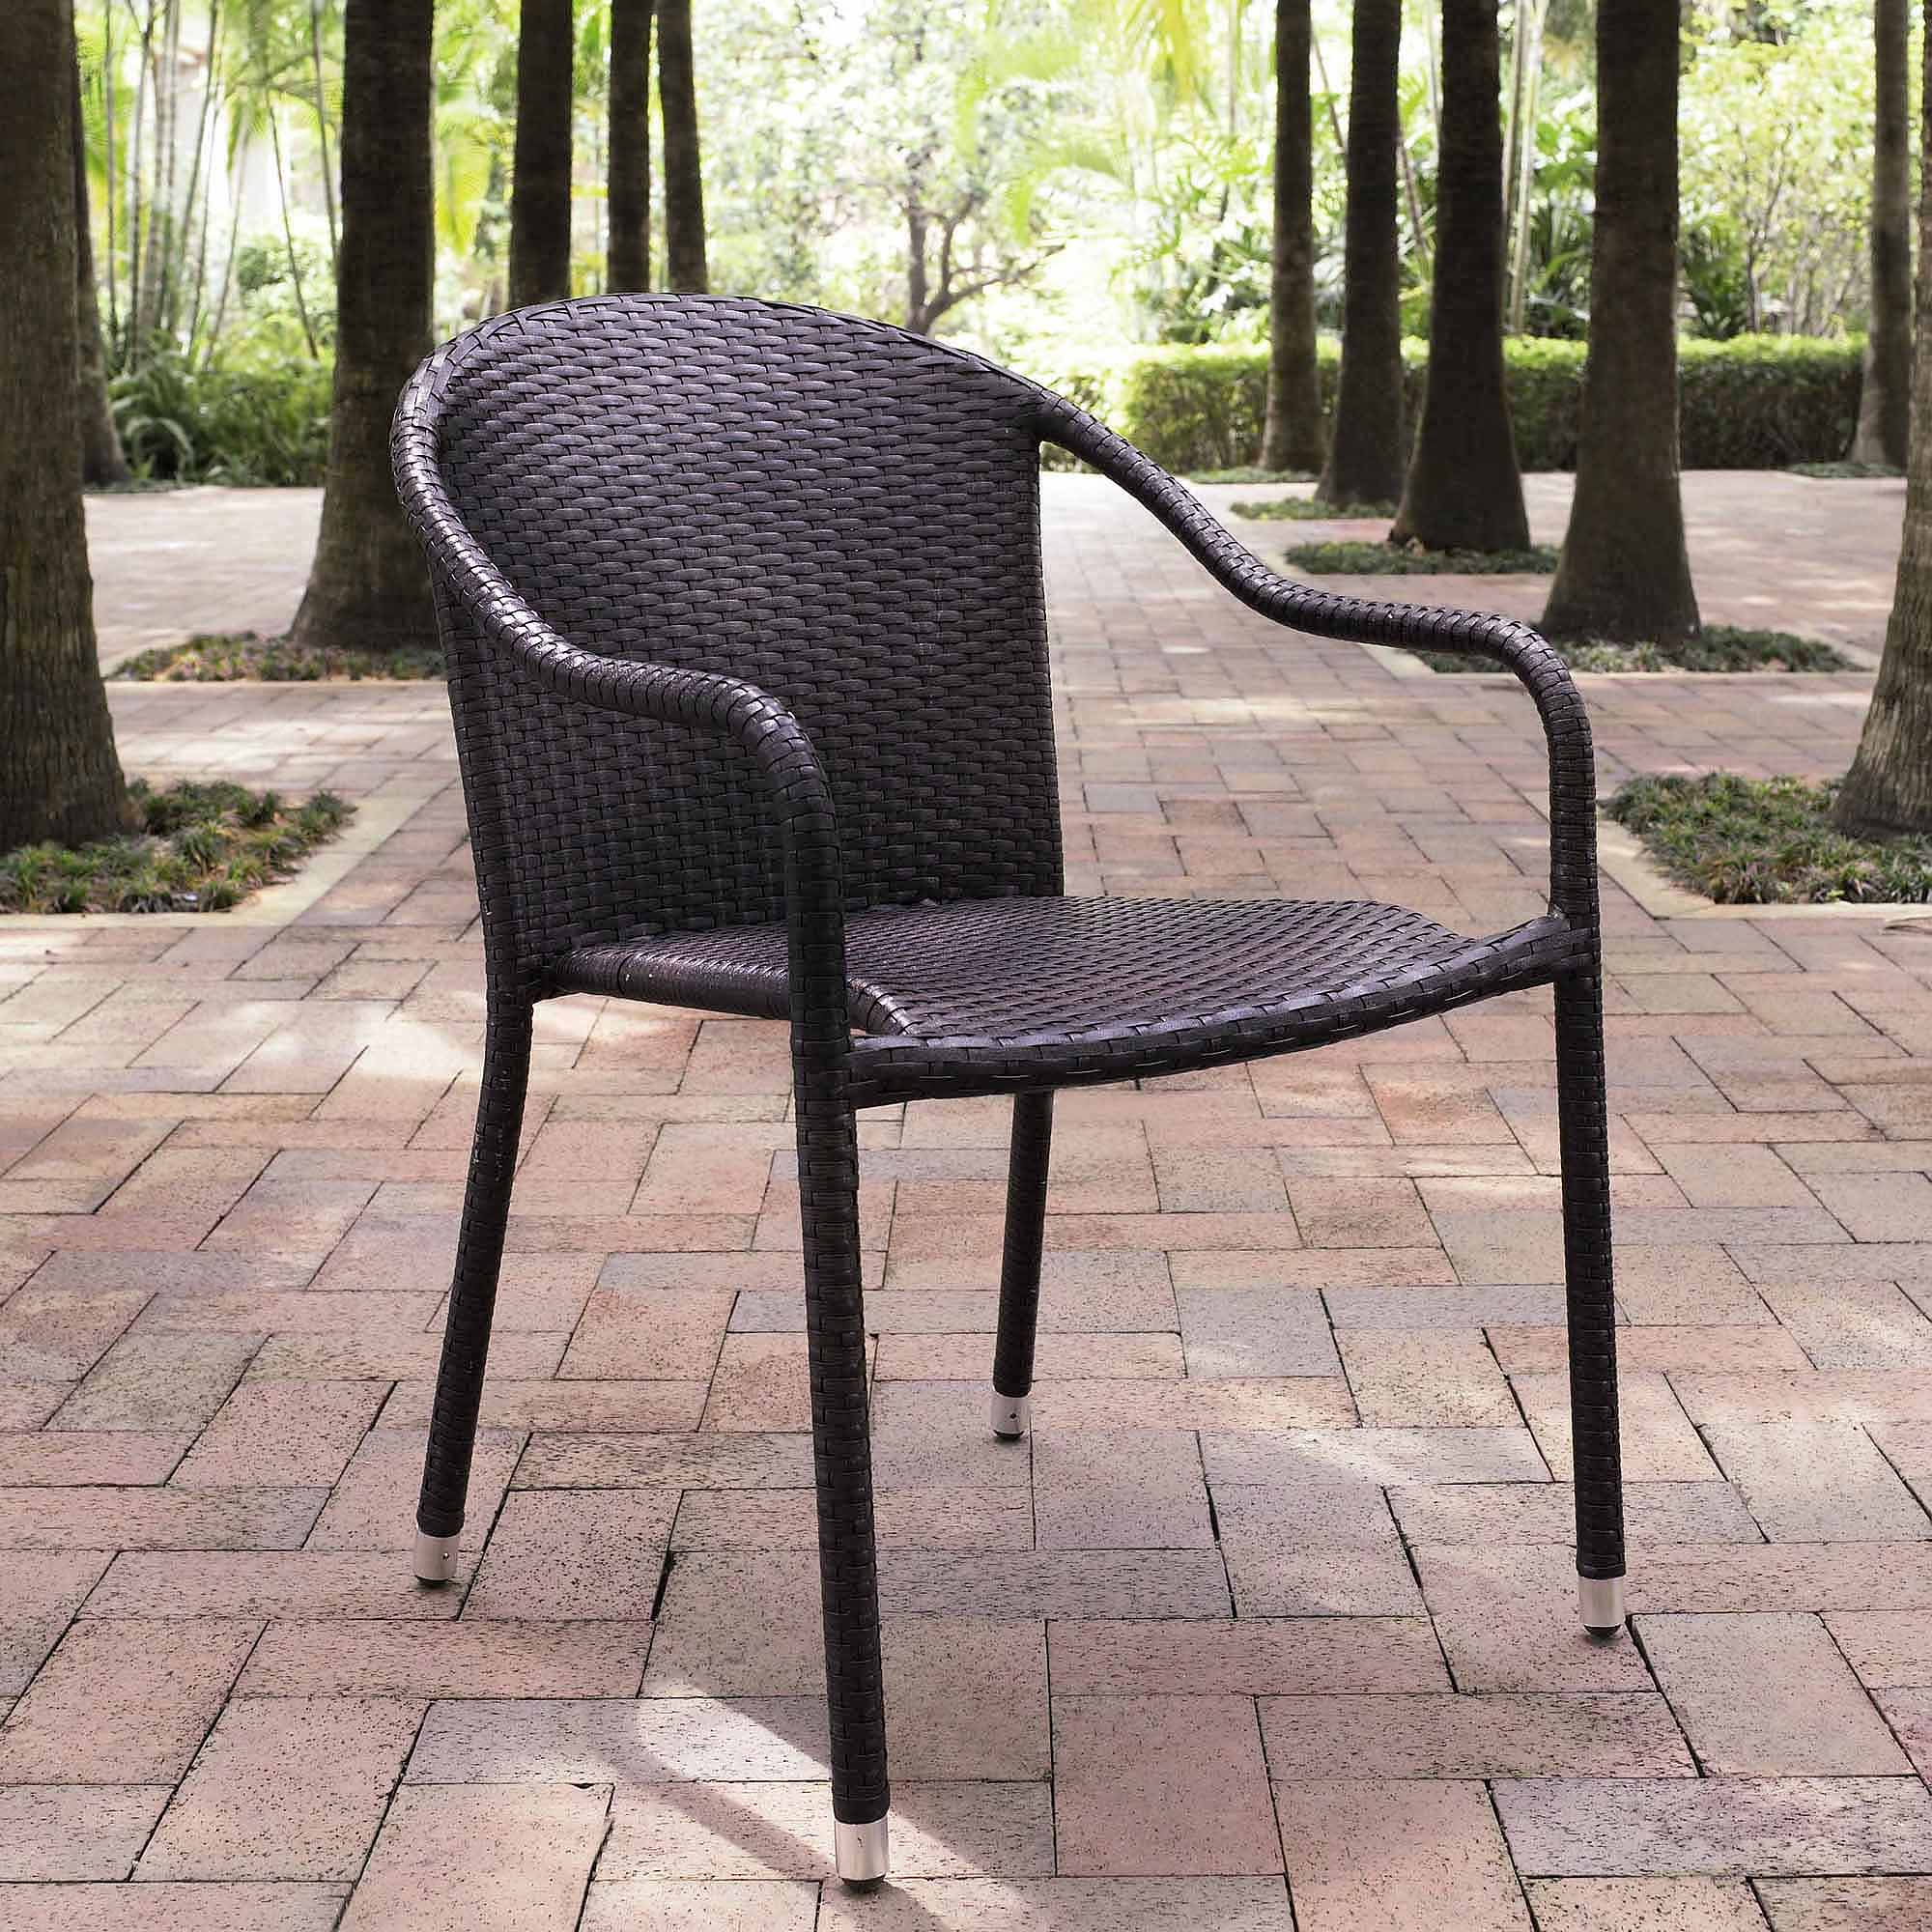 Stackable Aluminum Patio Chairs stacking chairs patio chairs & stools - walmart